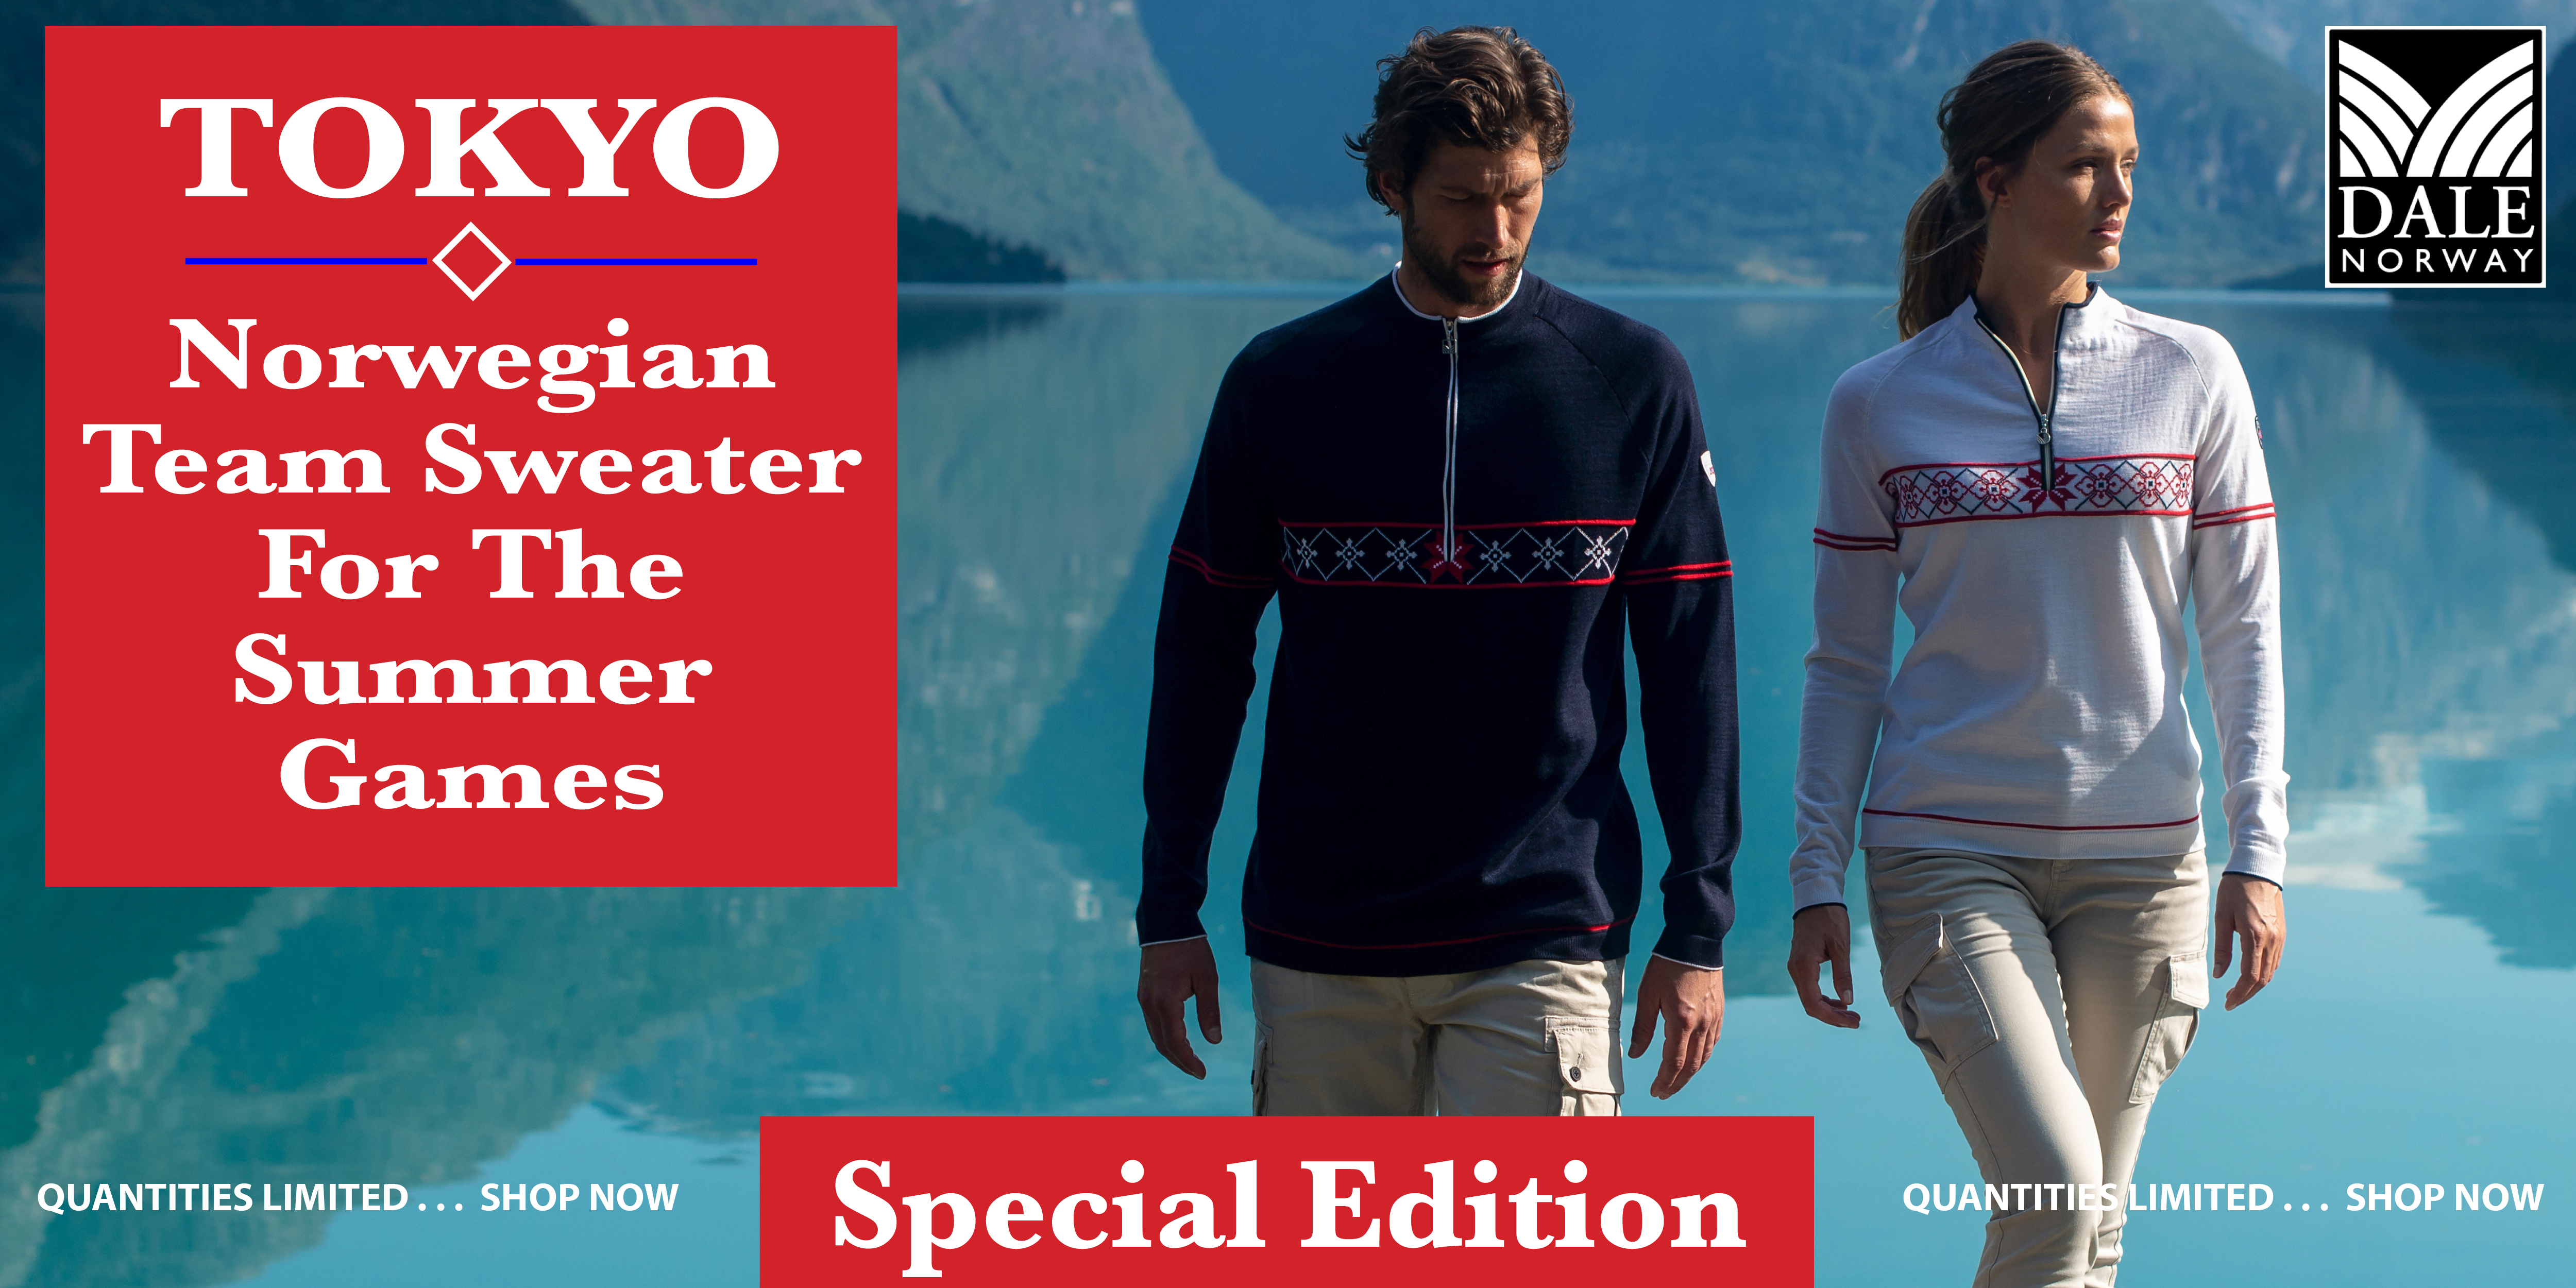 Tokyo the Norwegian Team Sweater for the Summer Games